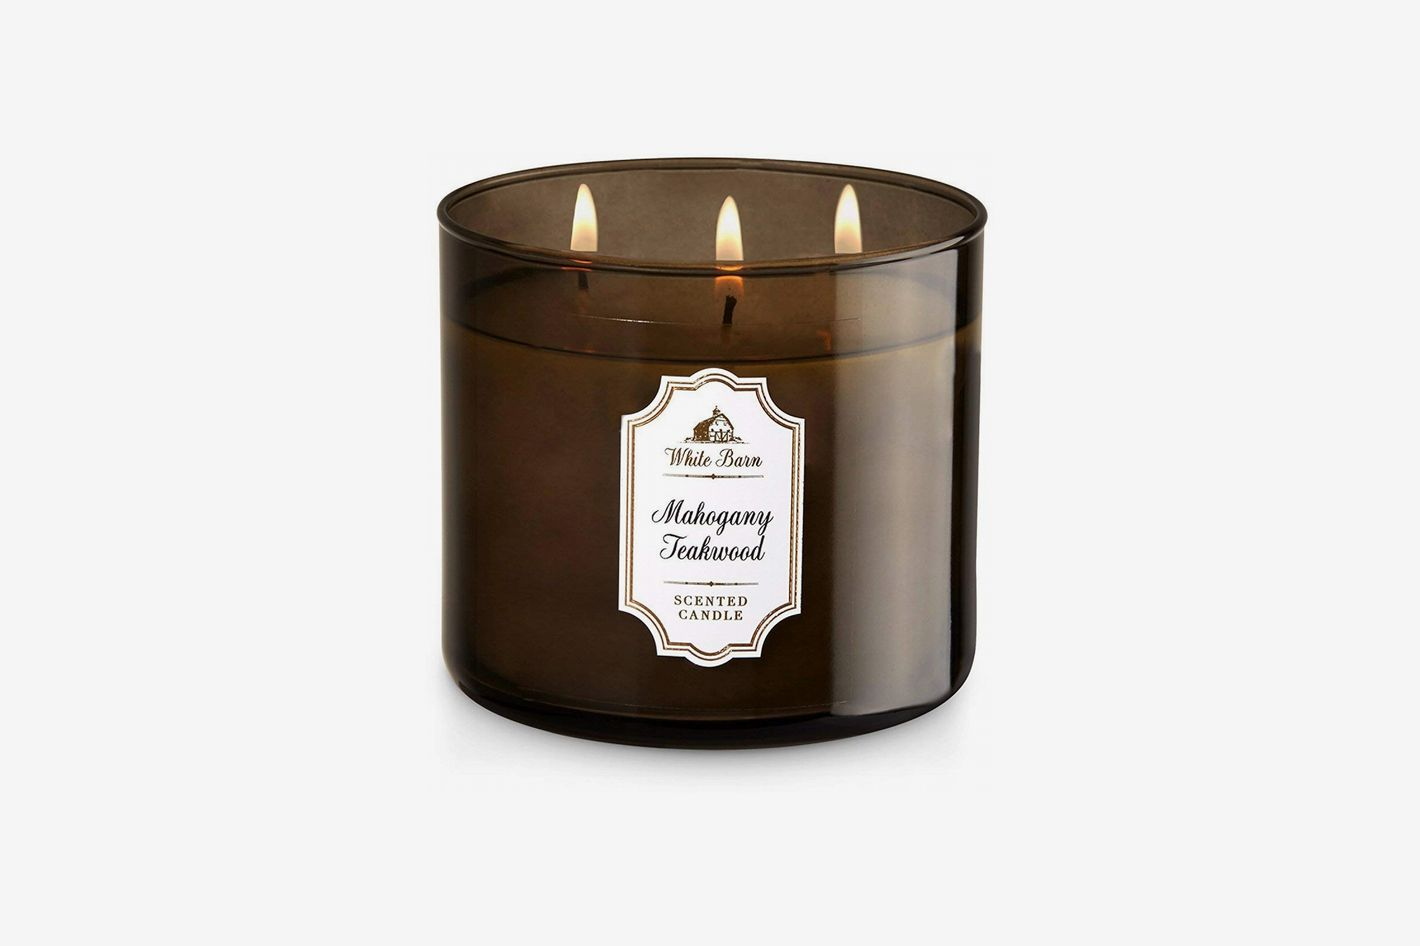 Bath Body Works White Barn 3 Wick Candle